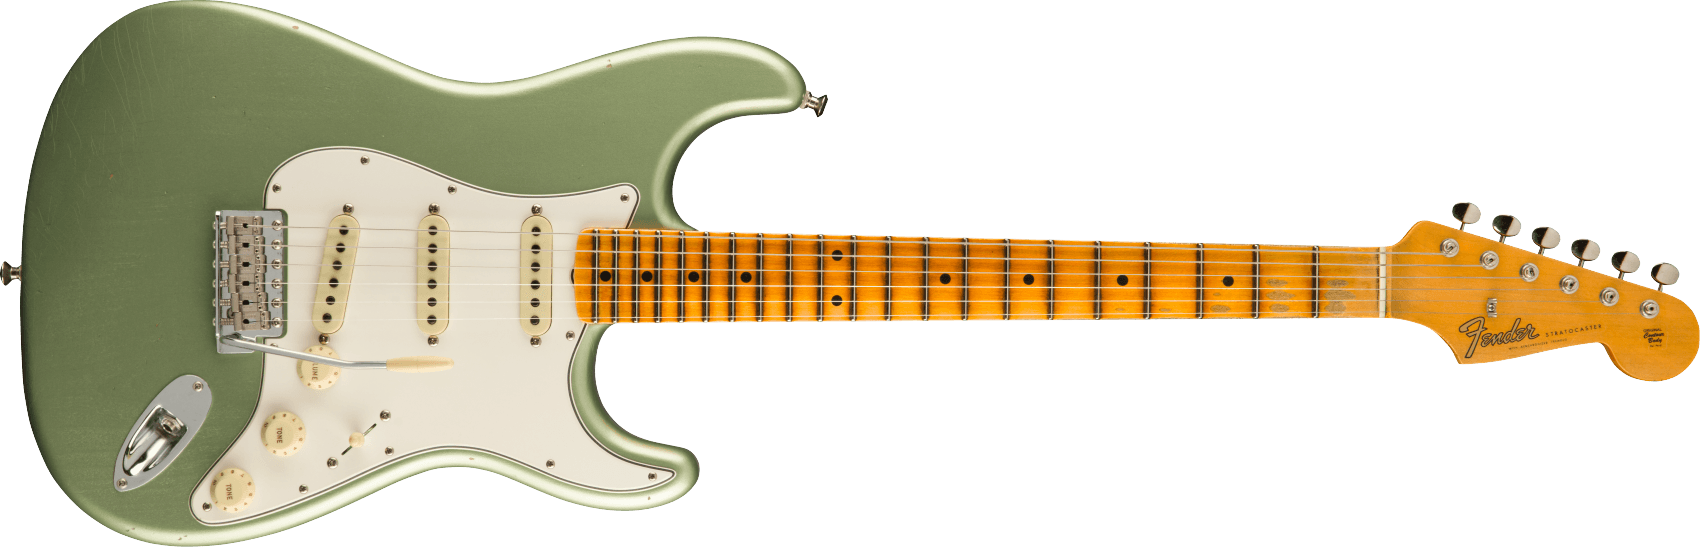 9231012920: Maple Fingerboard, Faded Aged Sage Green Metallic